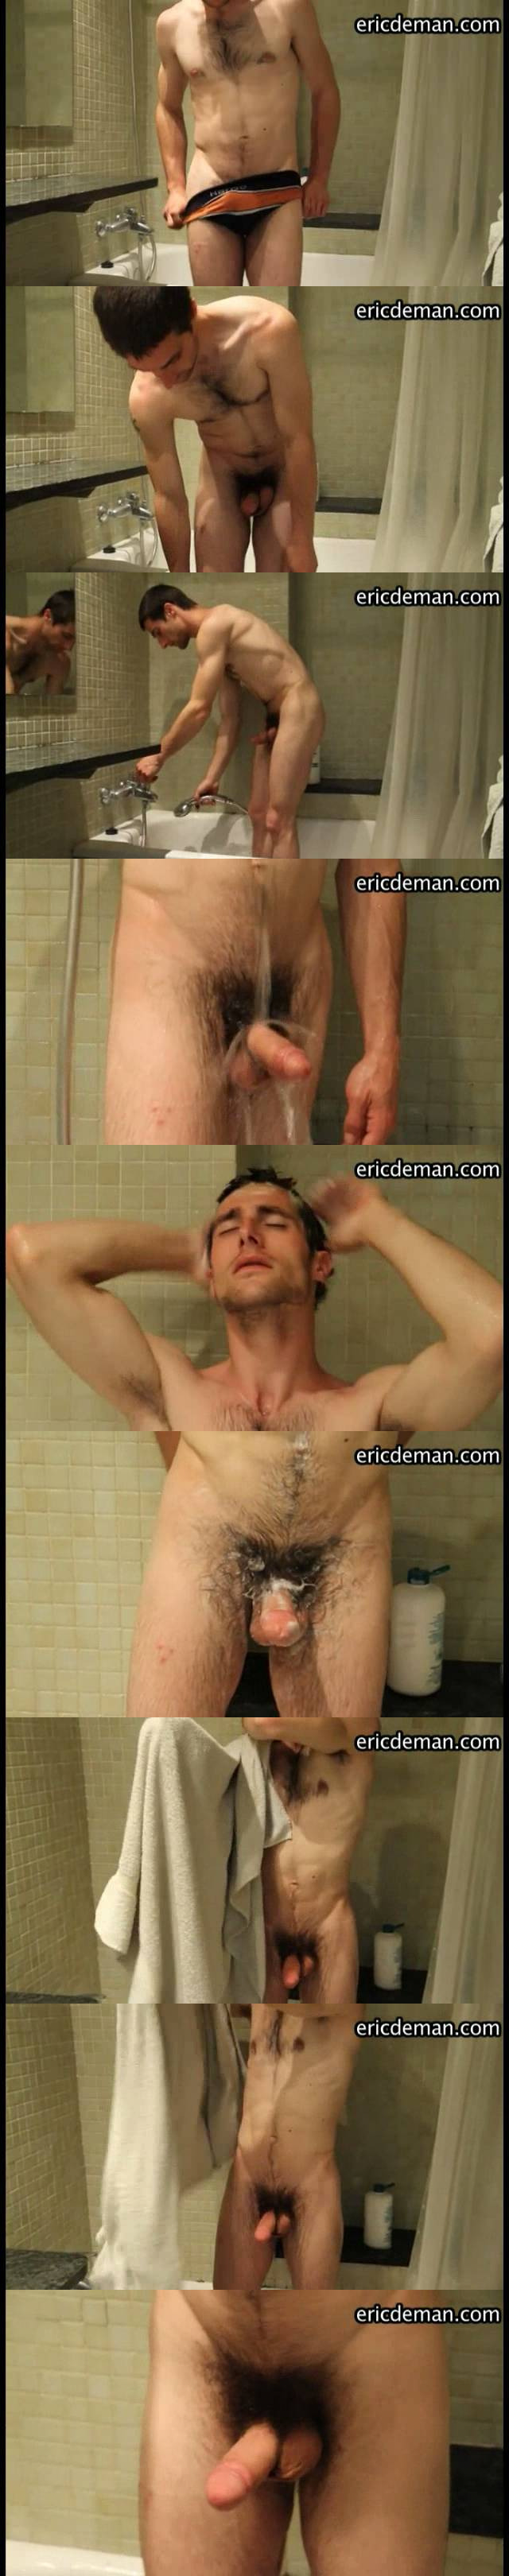 homemade video exhibitionist guy shower